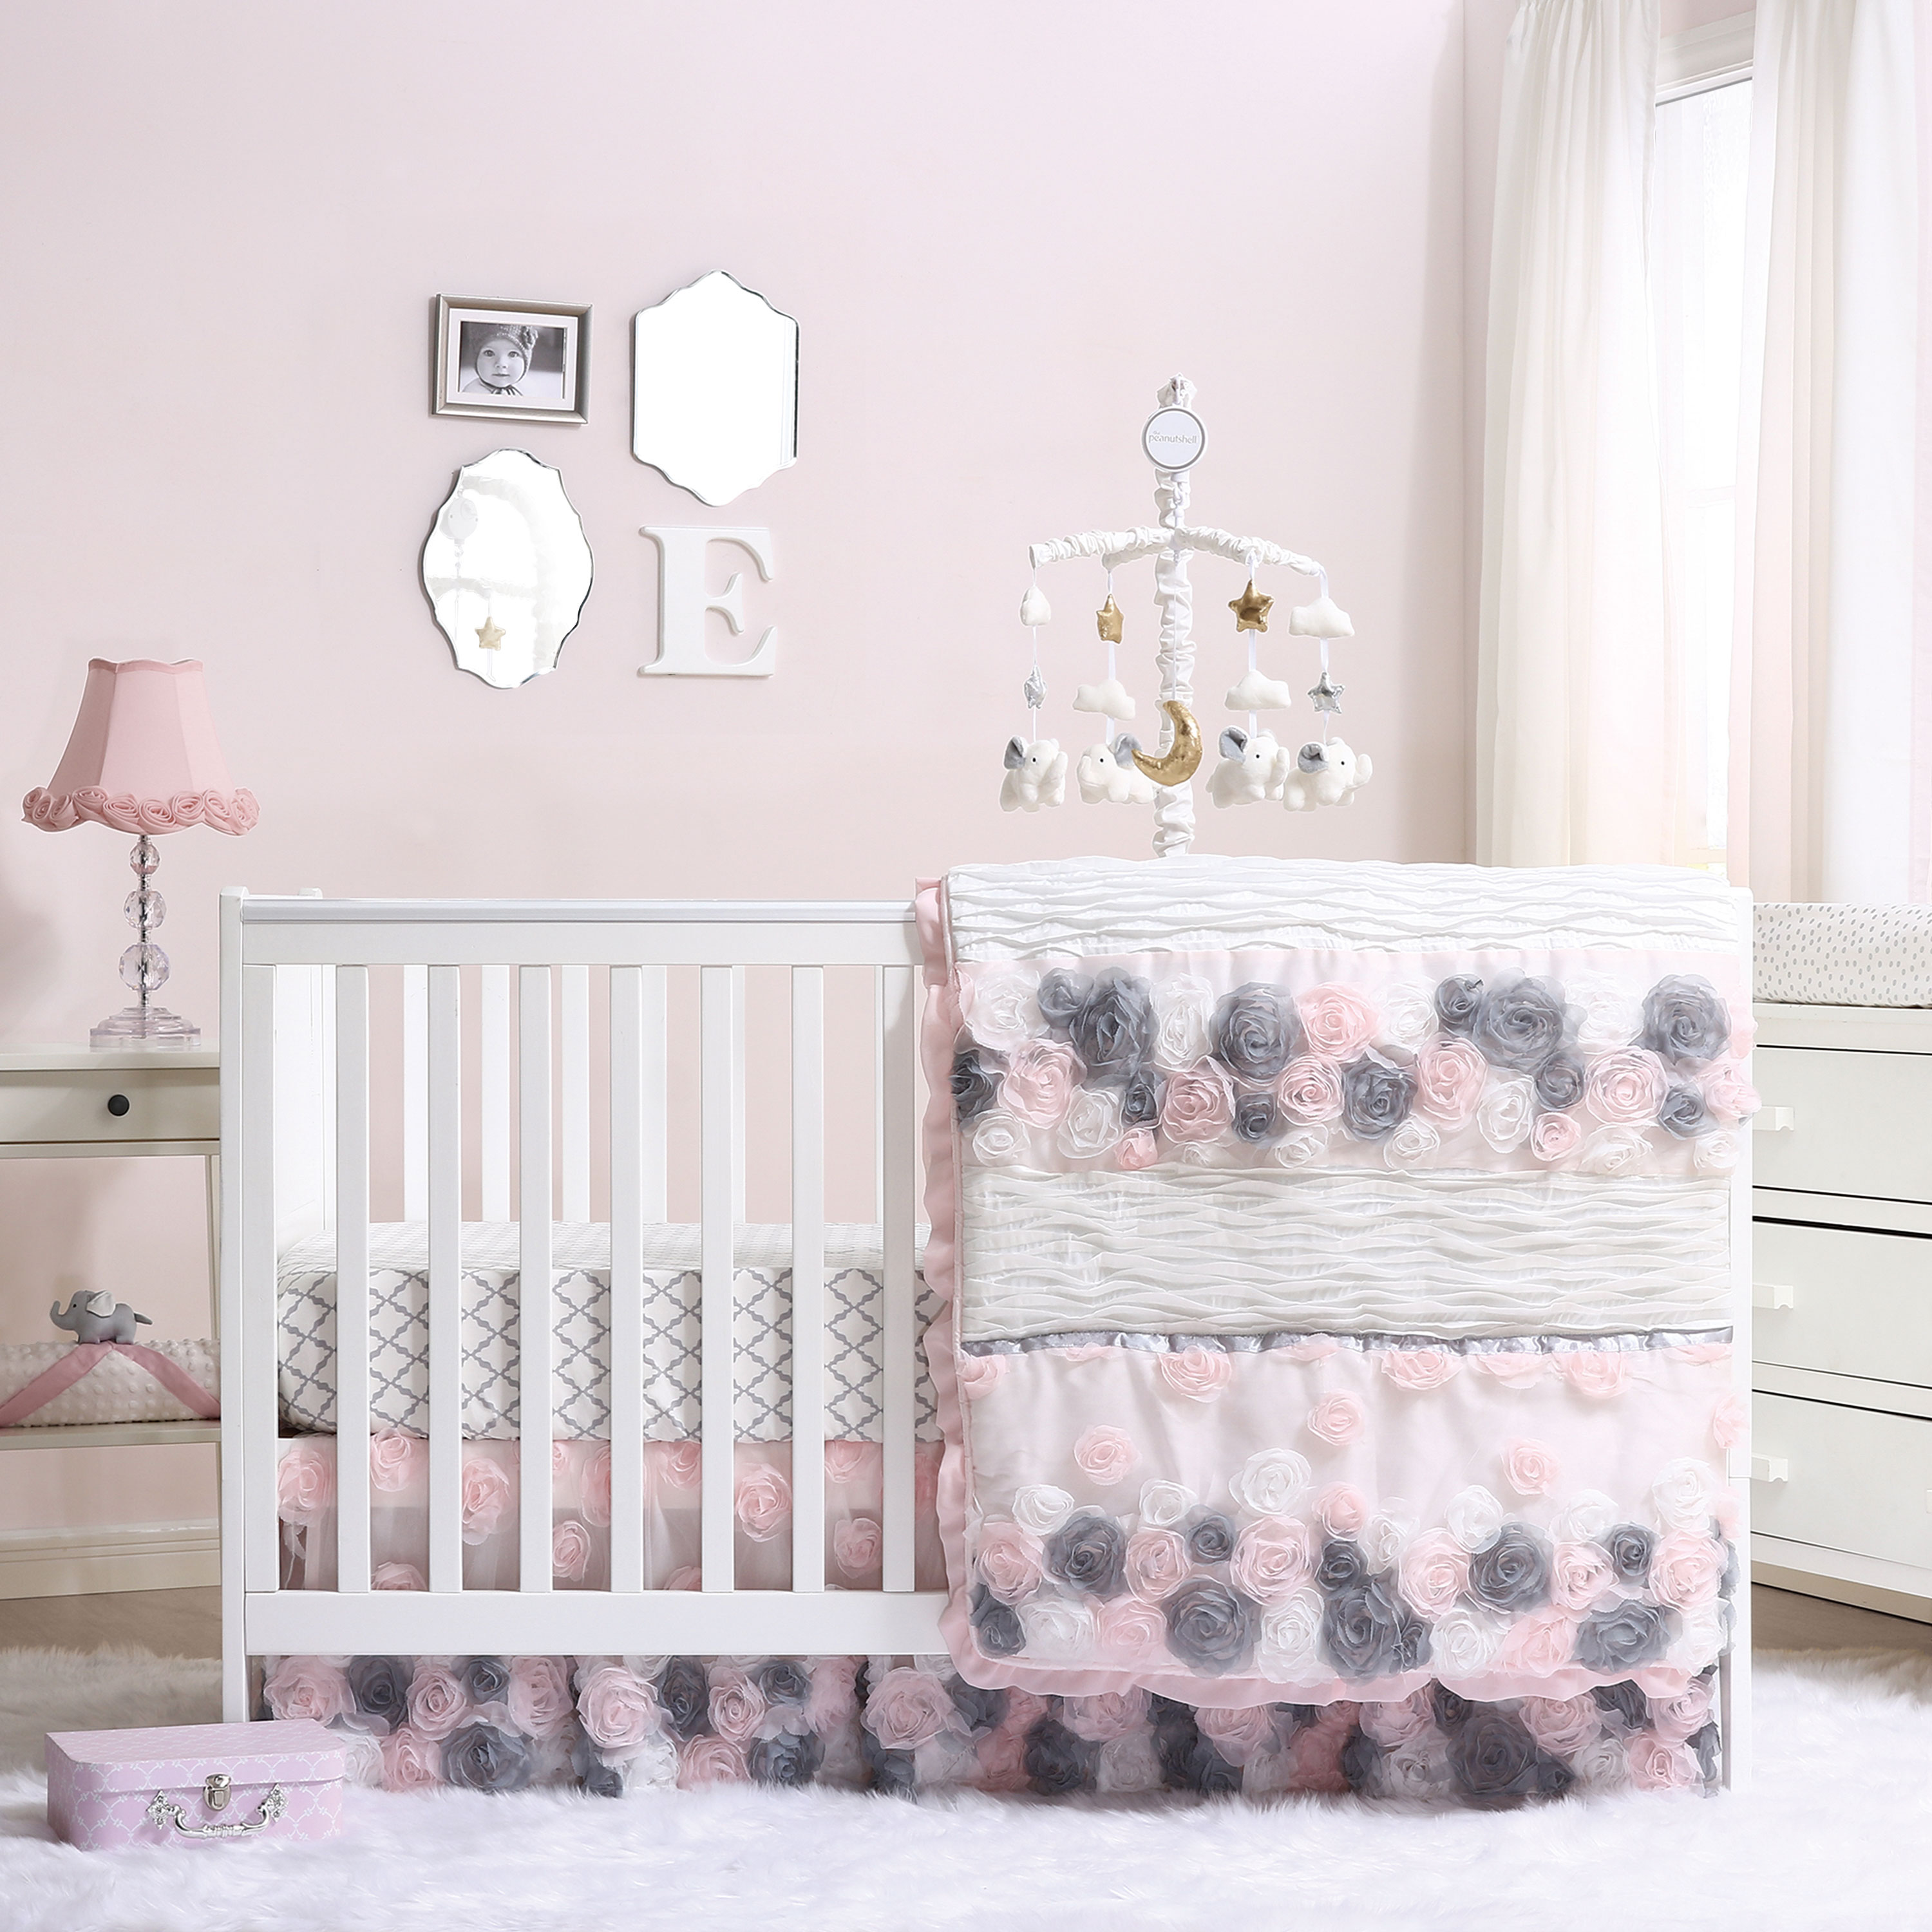 530840dd2 Details about Colette Pink/Grey Girl Floral Baby Crib Bedding-20-Piece by  The Peanut Shell